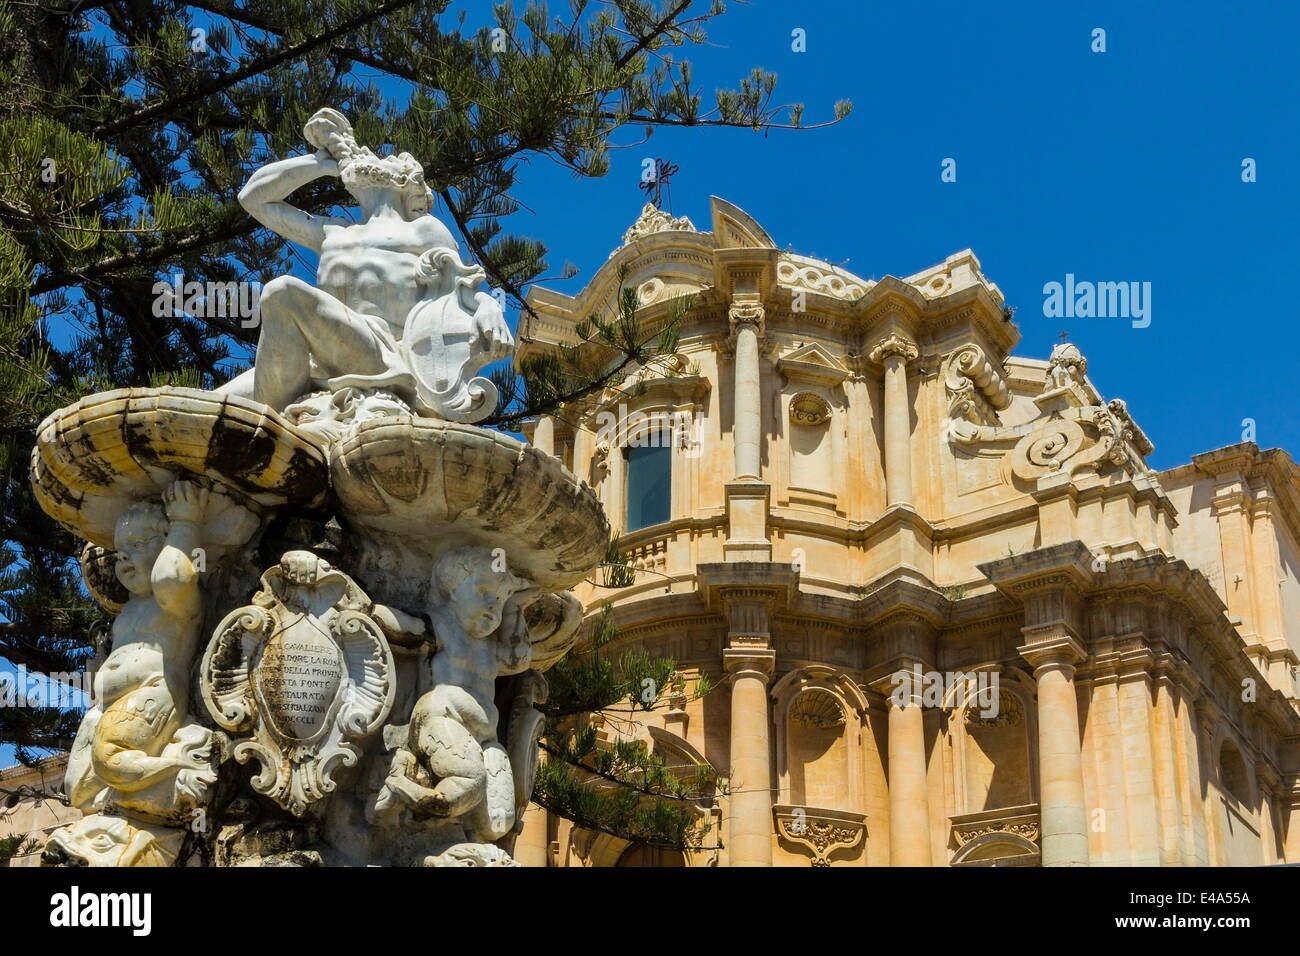 hercules fountain and san domenico church in noto, famed for its